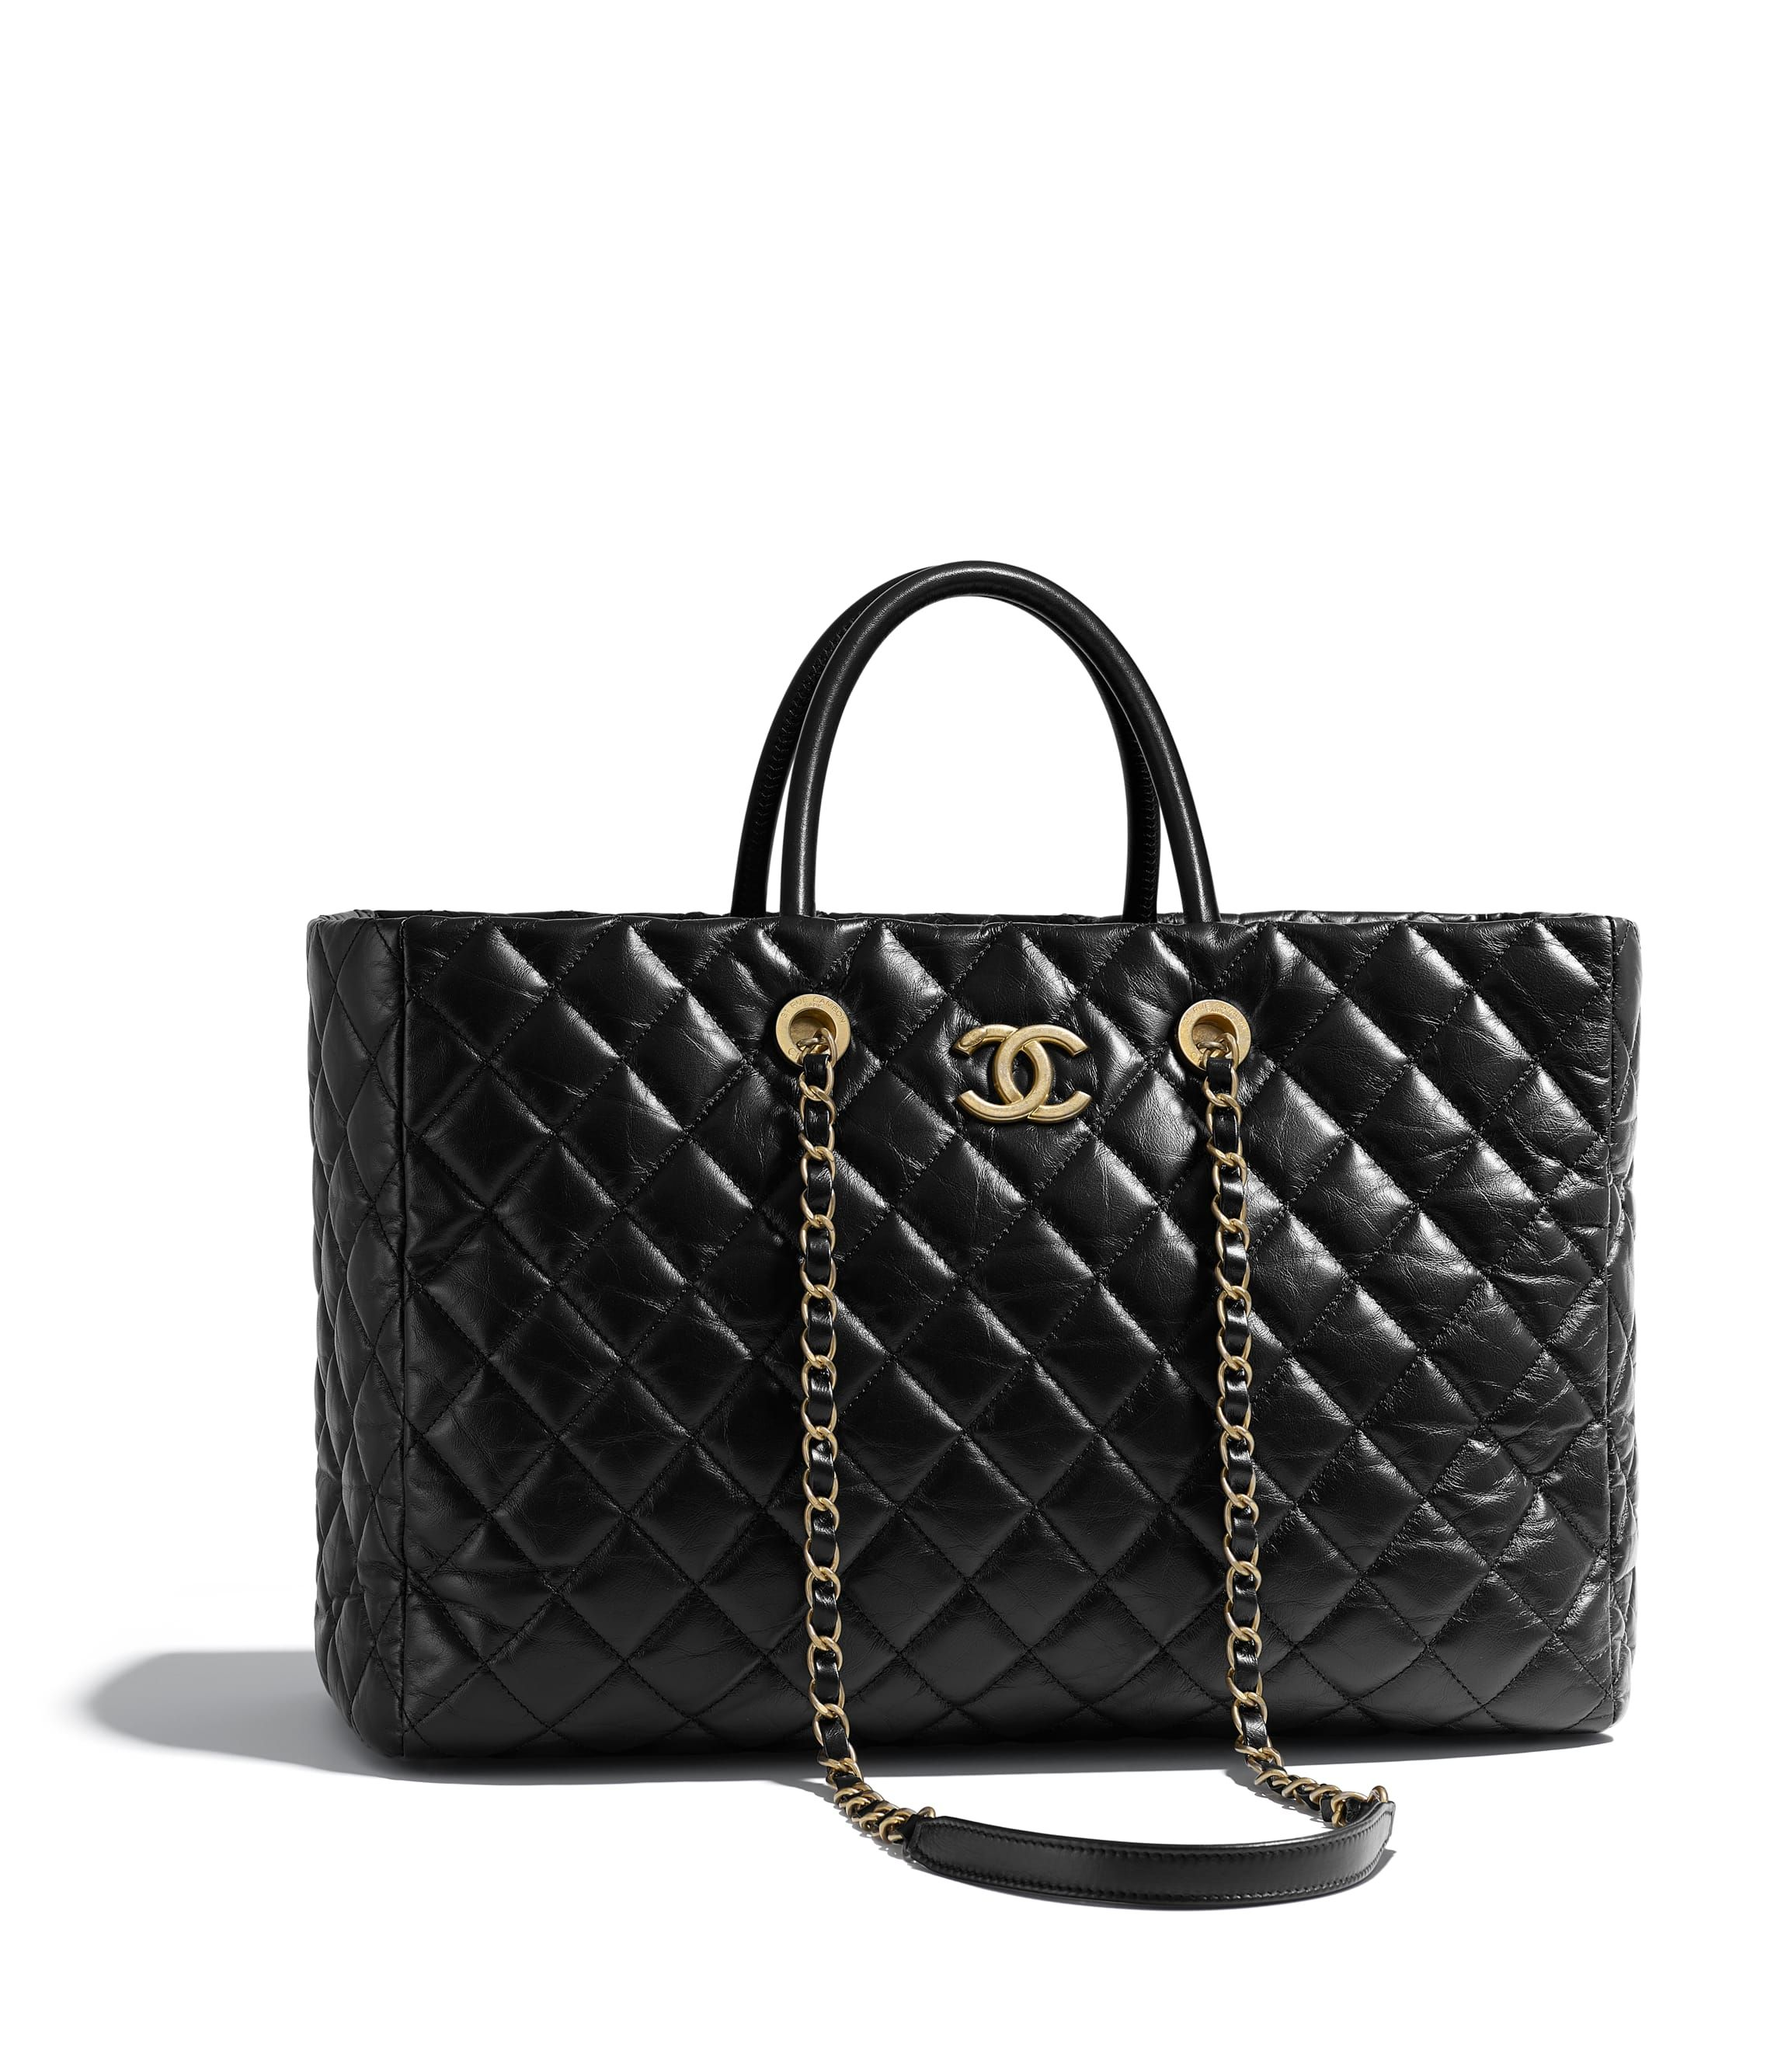 d485edea9c56 Large Shopping Bag, aged calfskin & gold-tone metal, black - CHANEL ...